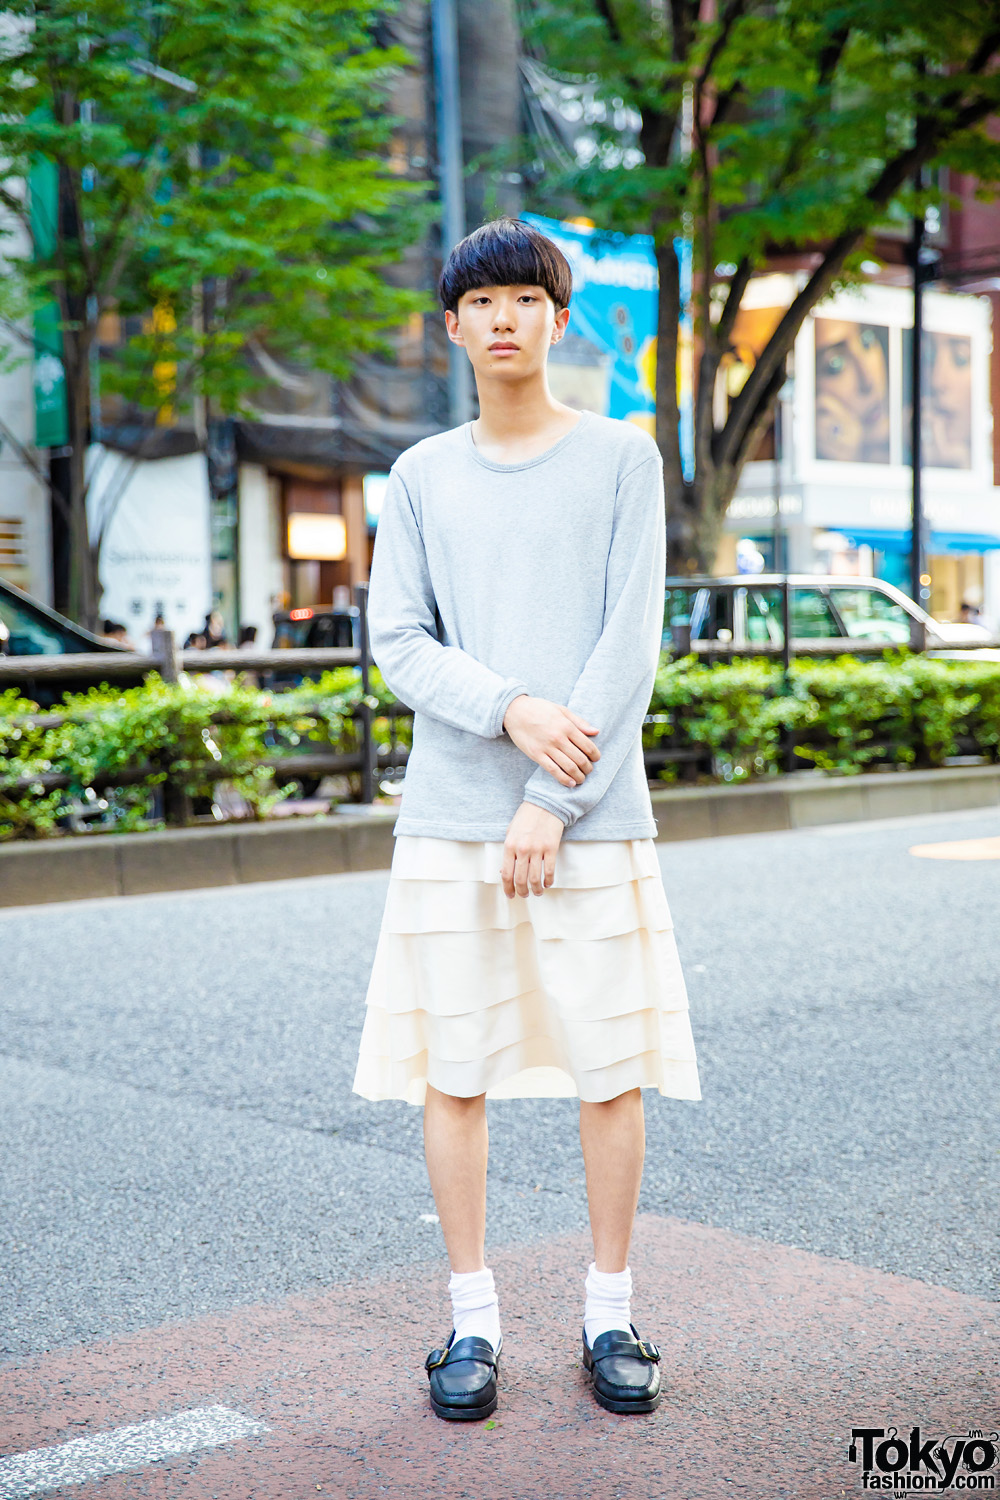 a842d3e49 Japanese Minimalist Street Style w/ Comme des Garcons Grey Sweater, Tiered  Skirt & Ralph Lauren Loafers